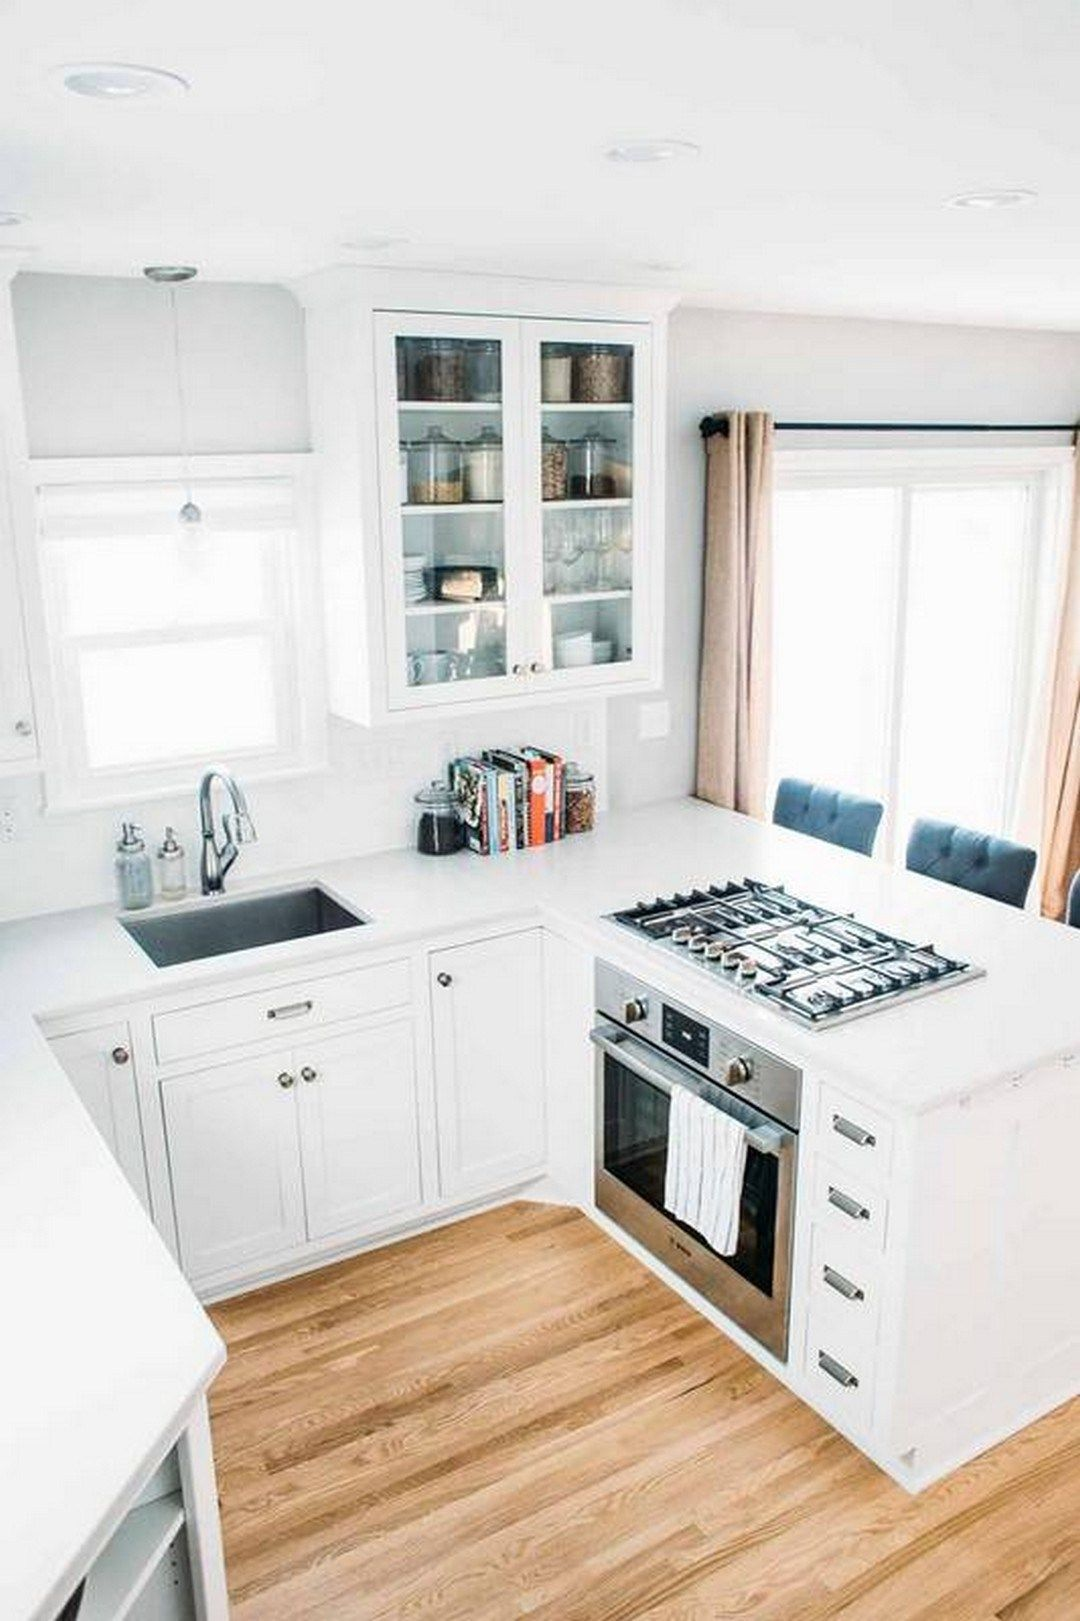 9 Inspiration For Your Own Tiny House With Small Kitchen Space ...